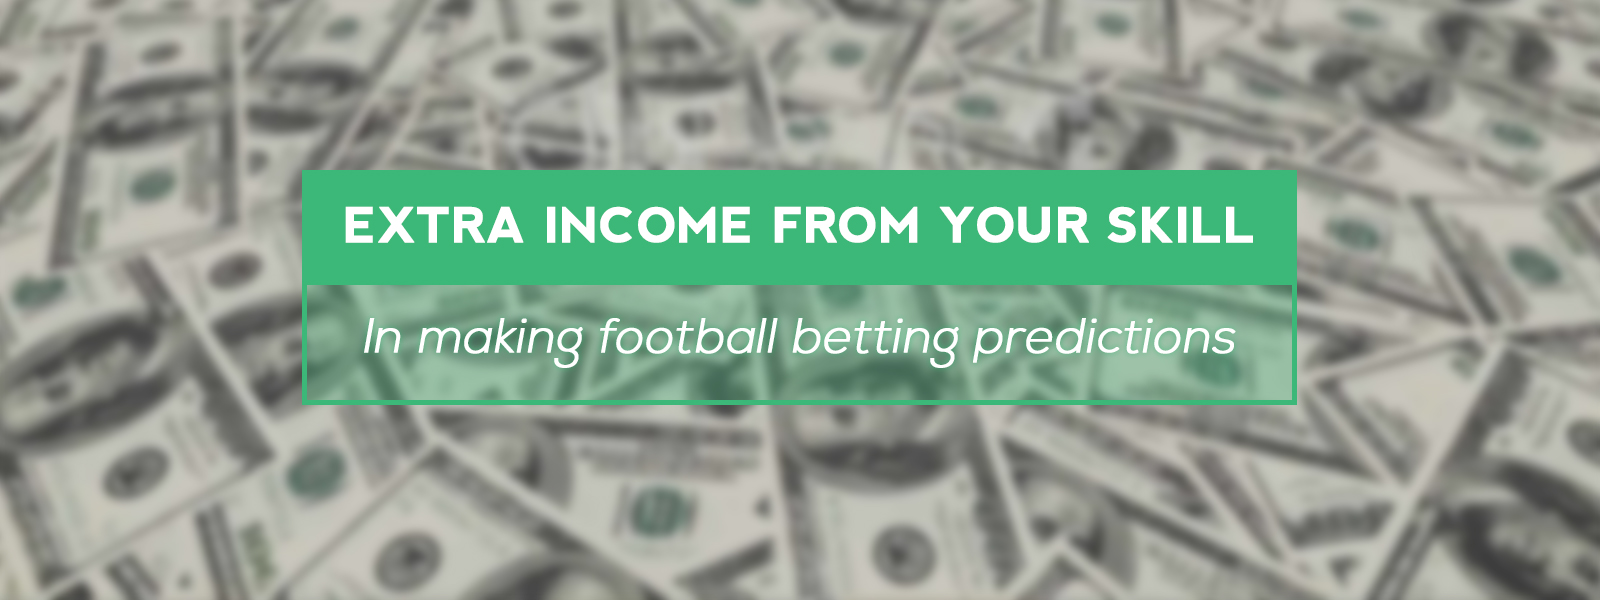 Extra Income From Your Skill In Making Football Betting Predictions